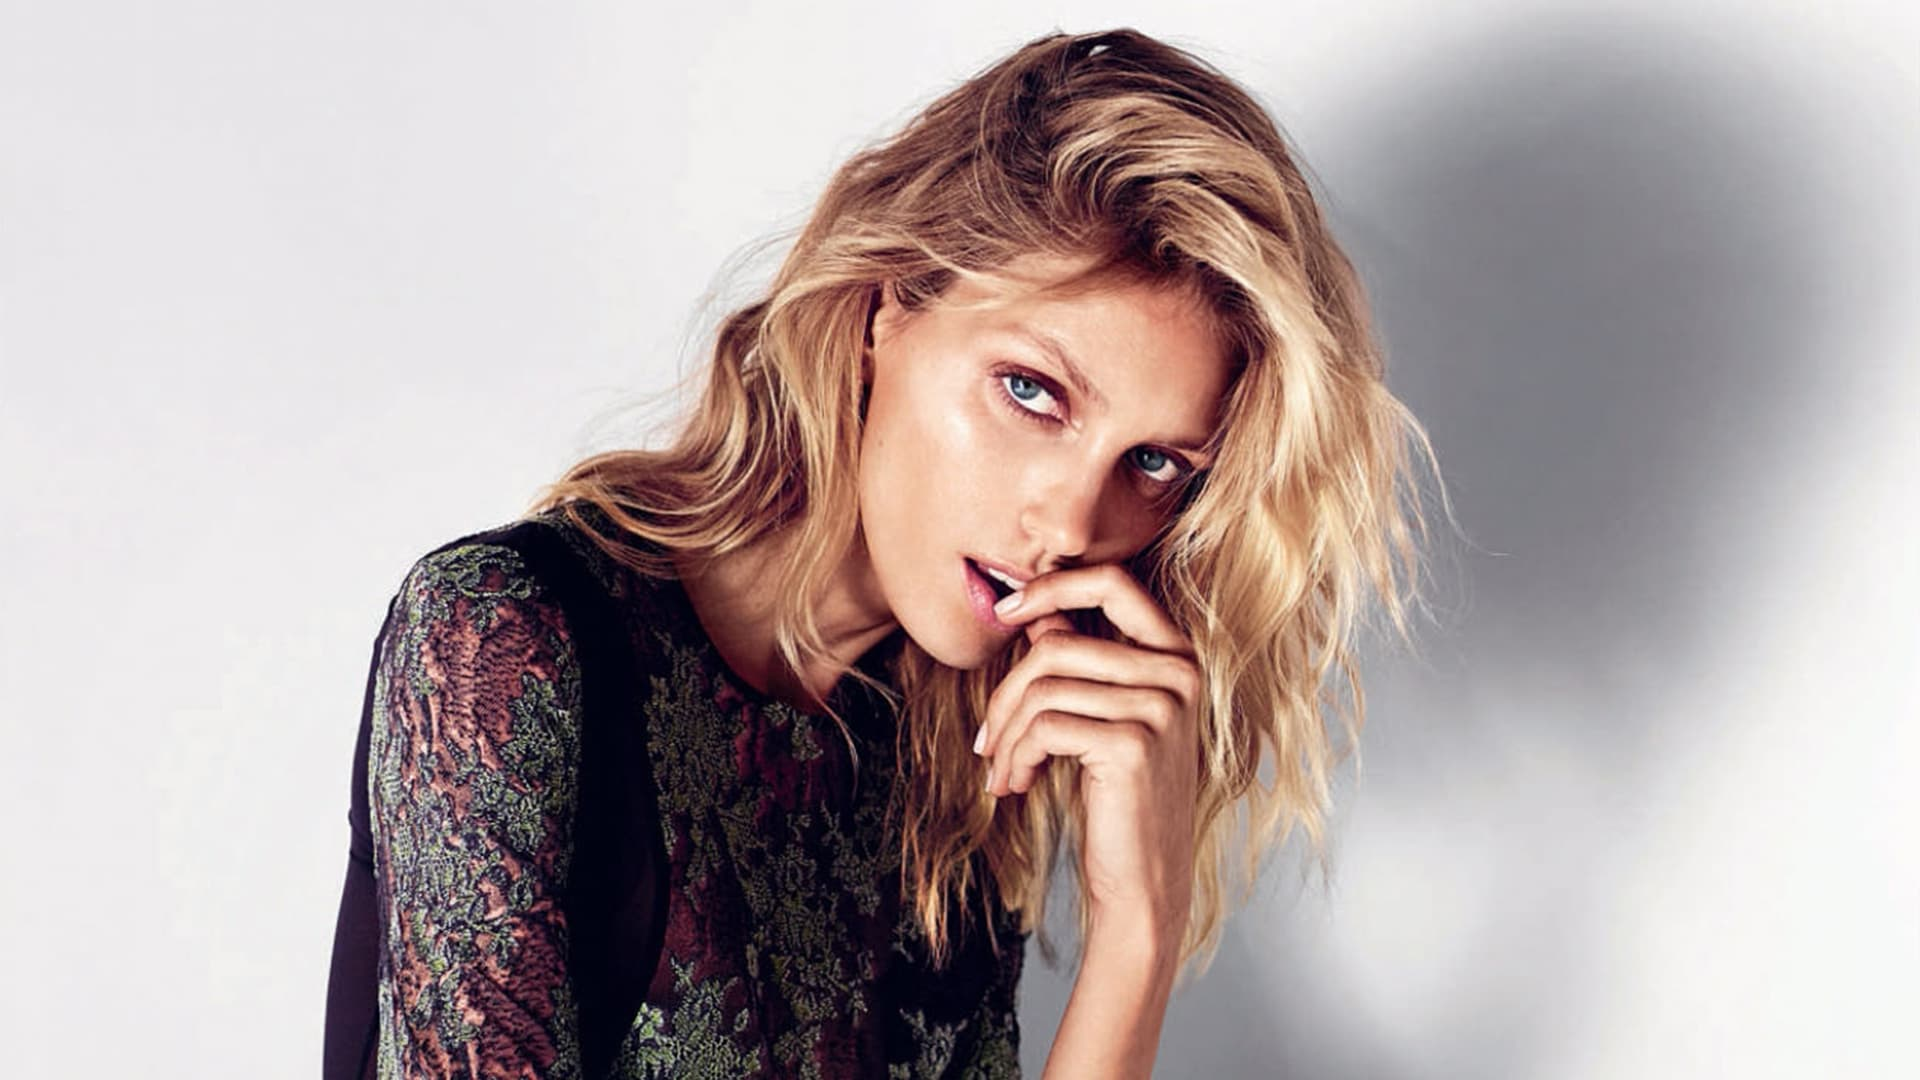 cute Anja Rubik HD wallpaper